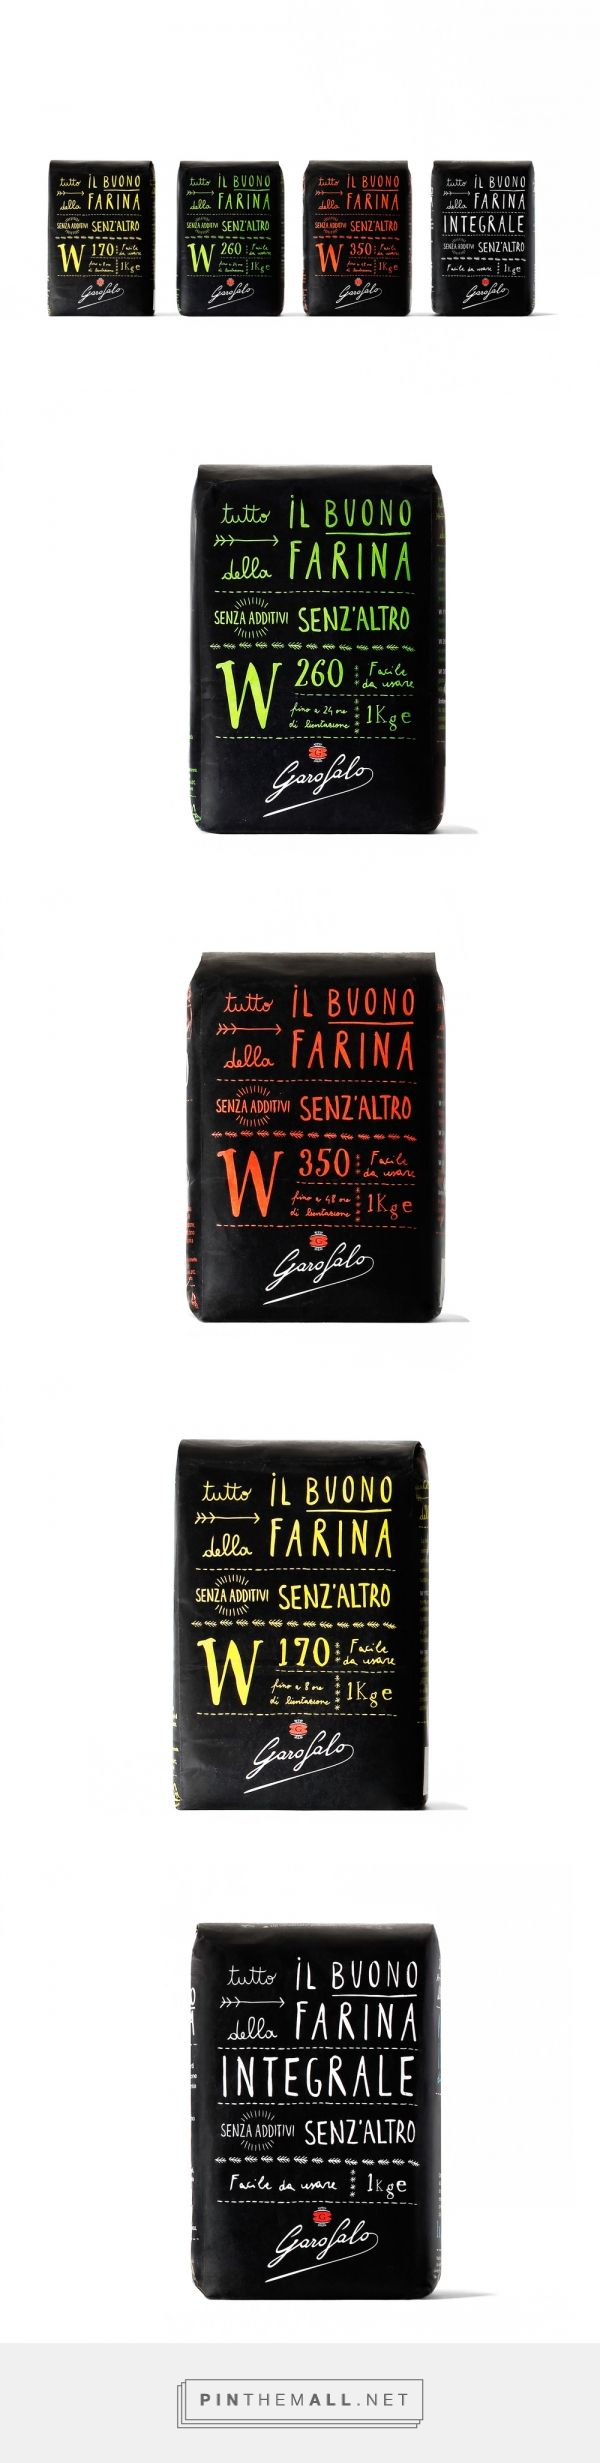 Garofalo via The Dieline - Branding & Packaging curated by Packaging Diva PD. Tasty black flour packaging. Garofalo worked with Angelini Design for the packaging and identity of its range of premium flours.